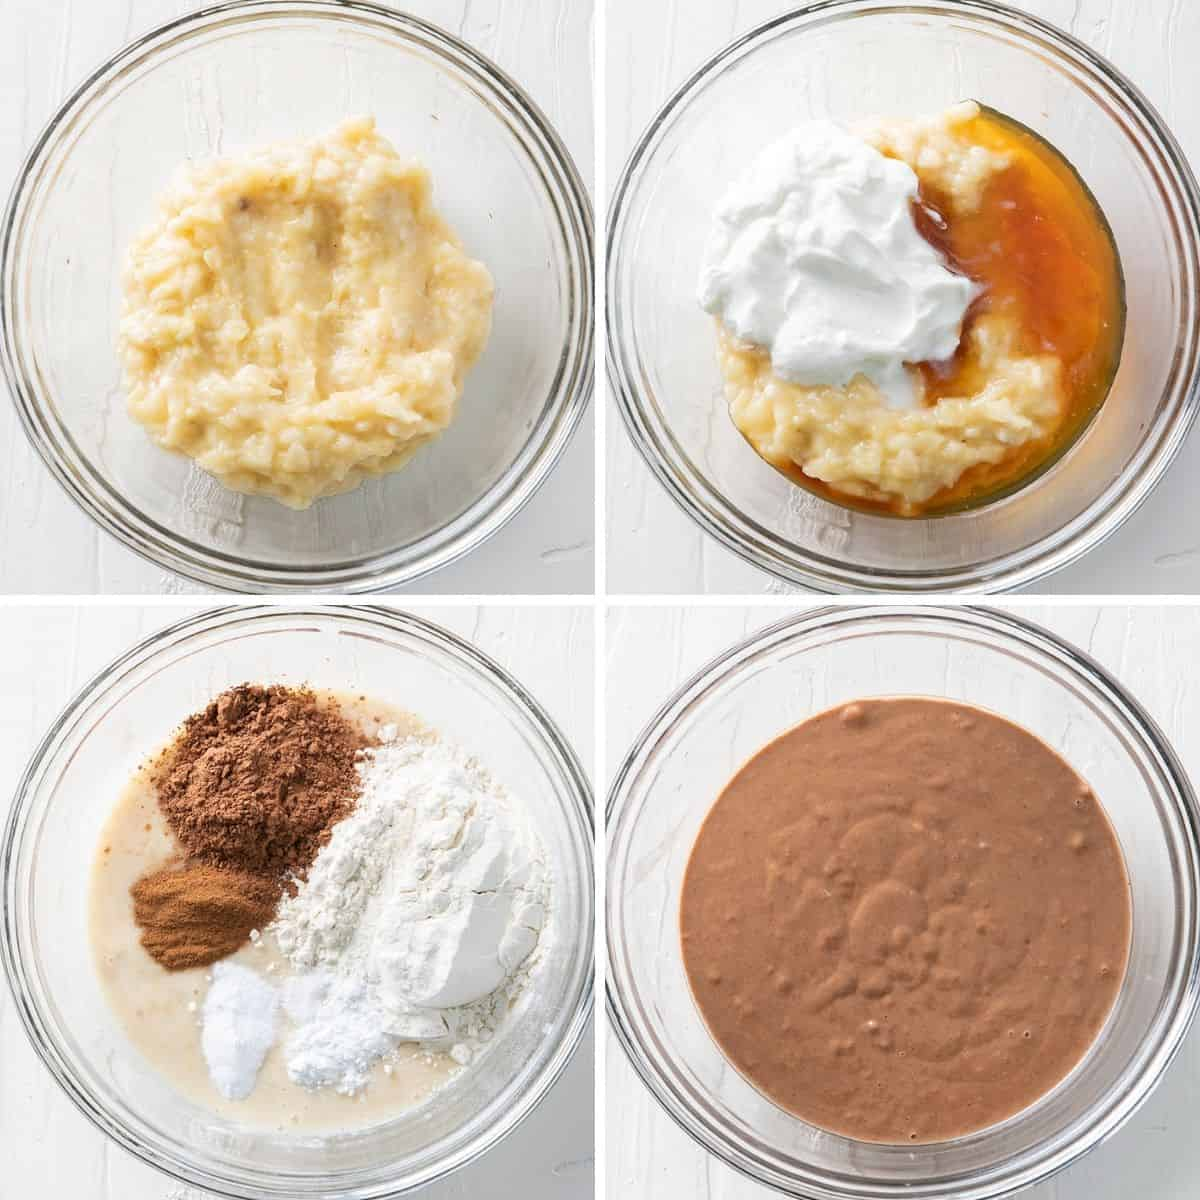 4 image collage to show how to make the batter for the banana bread